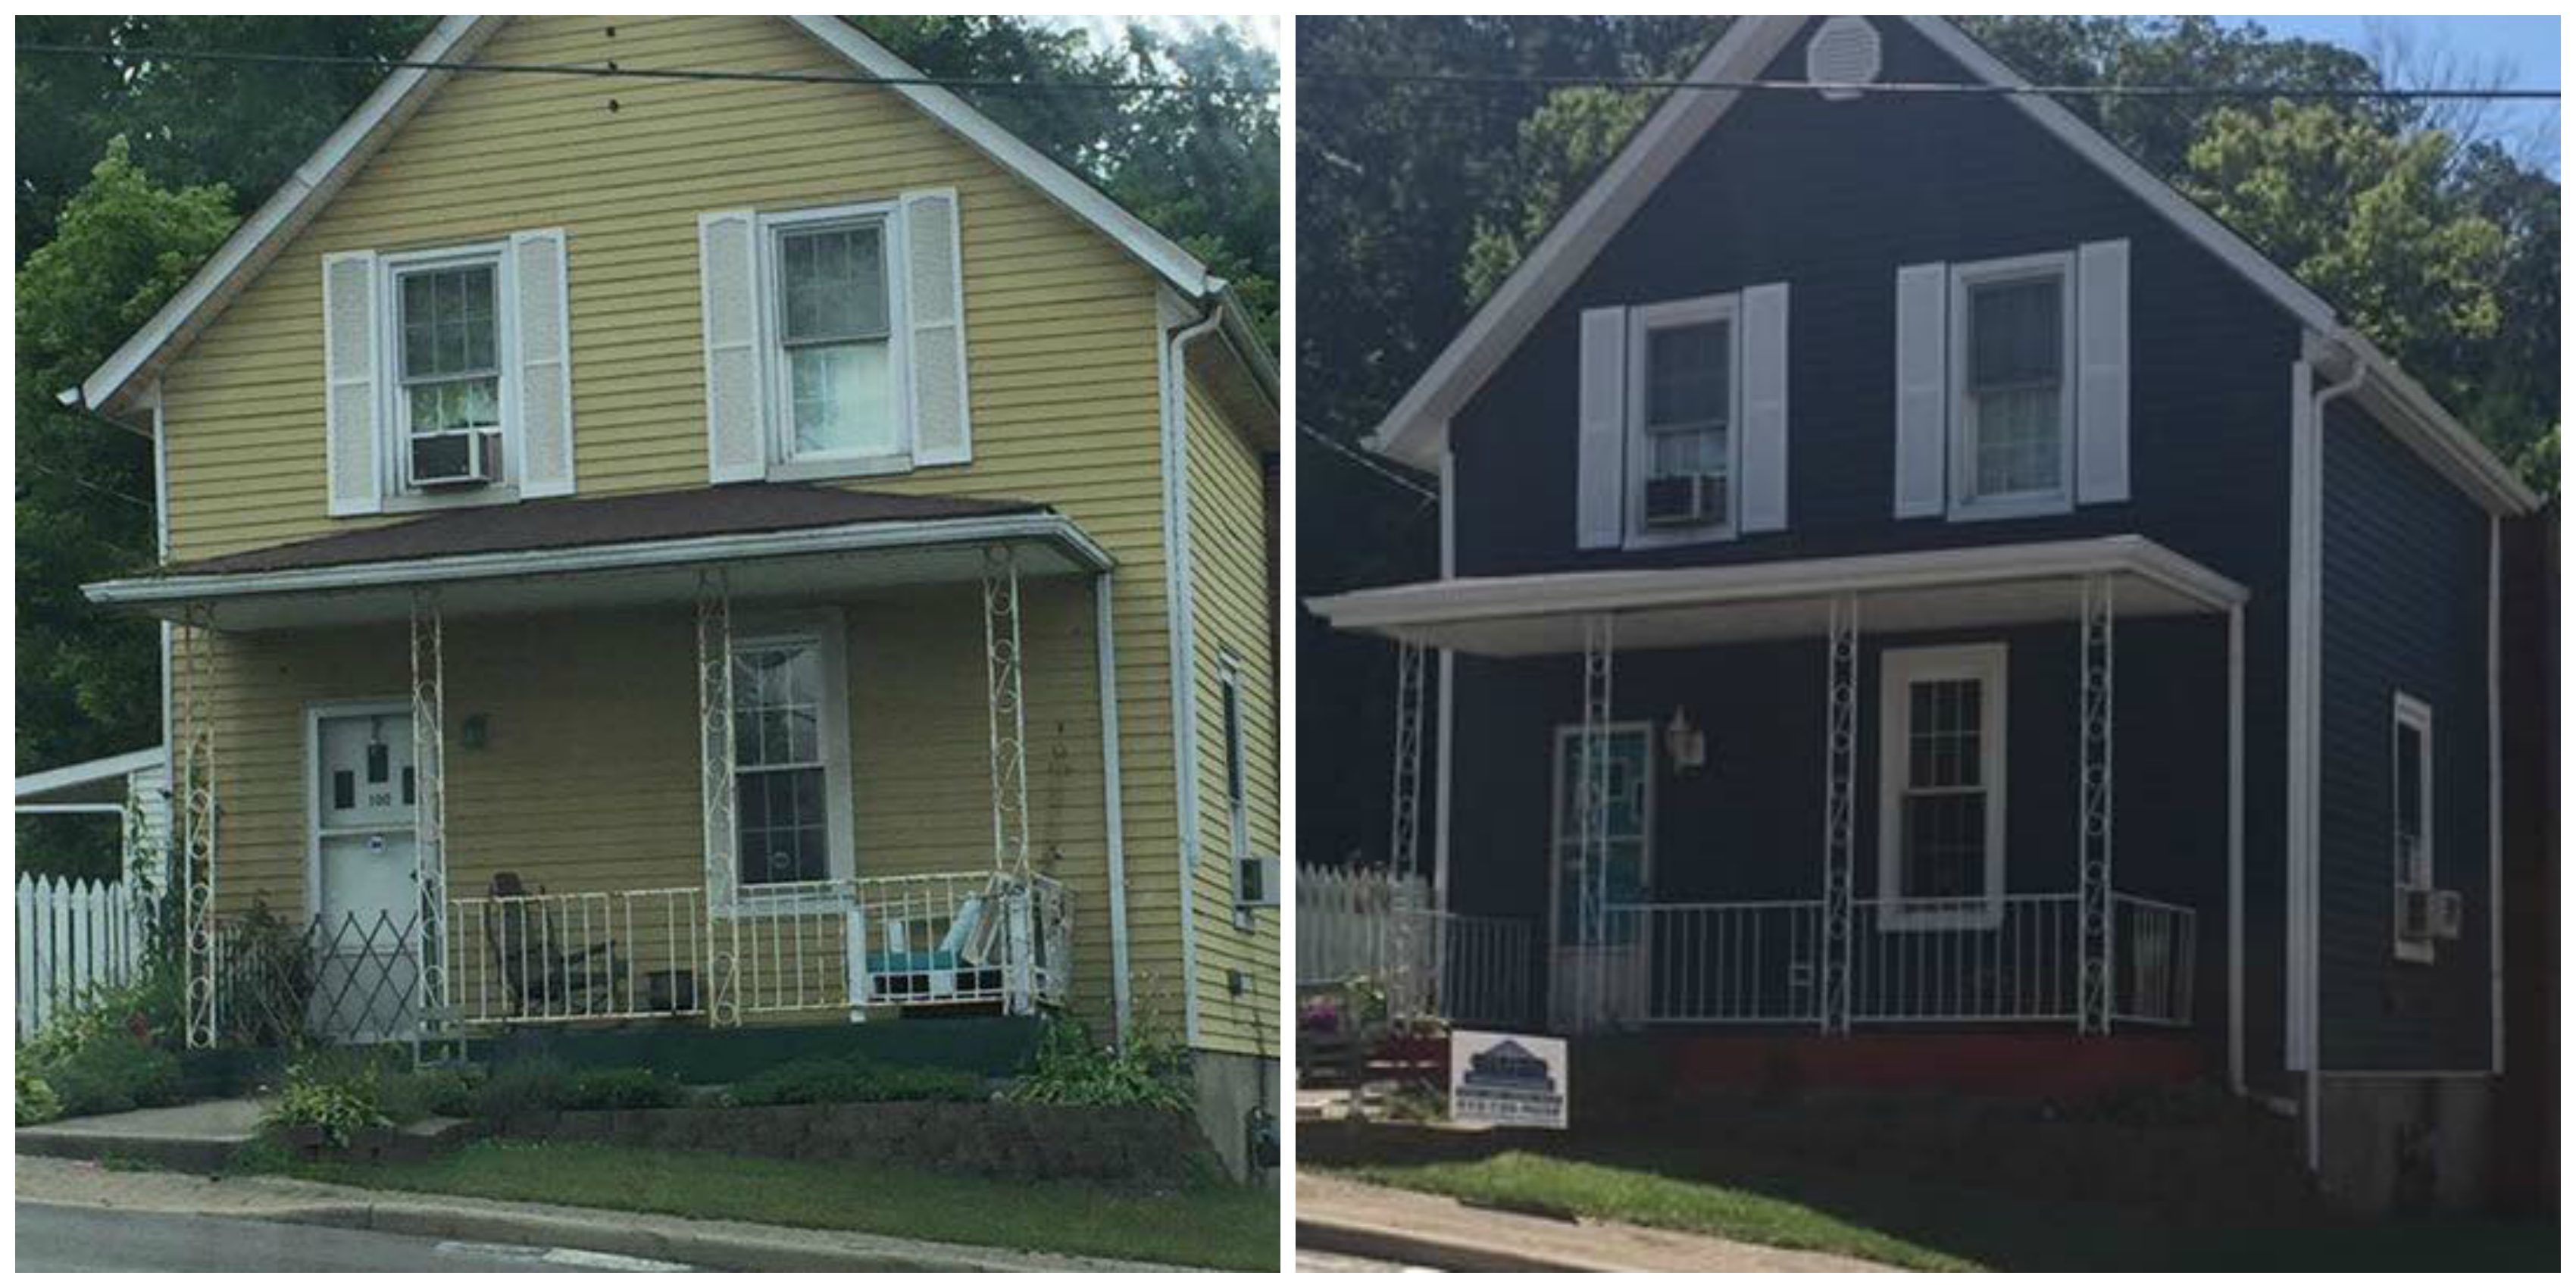 givens-before-and-after